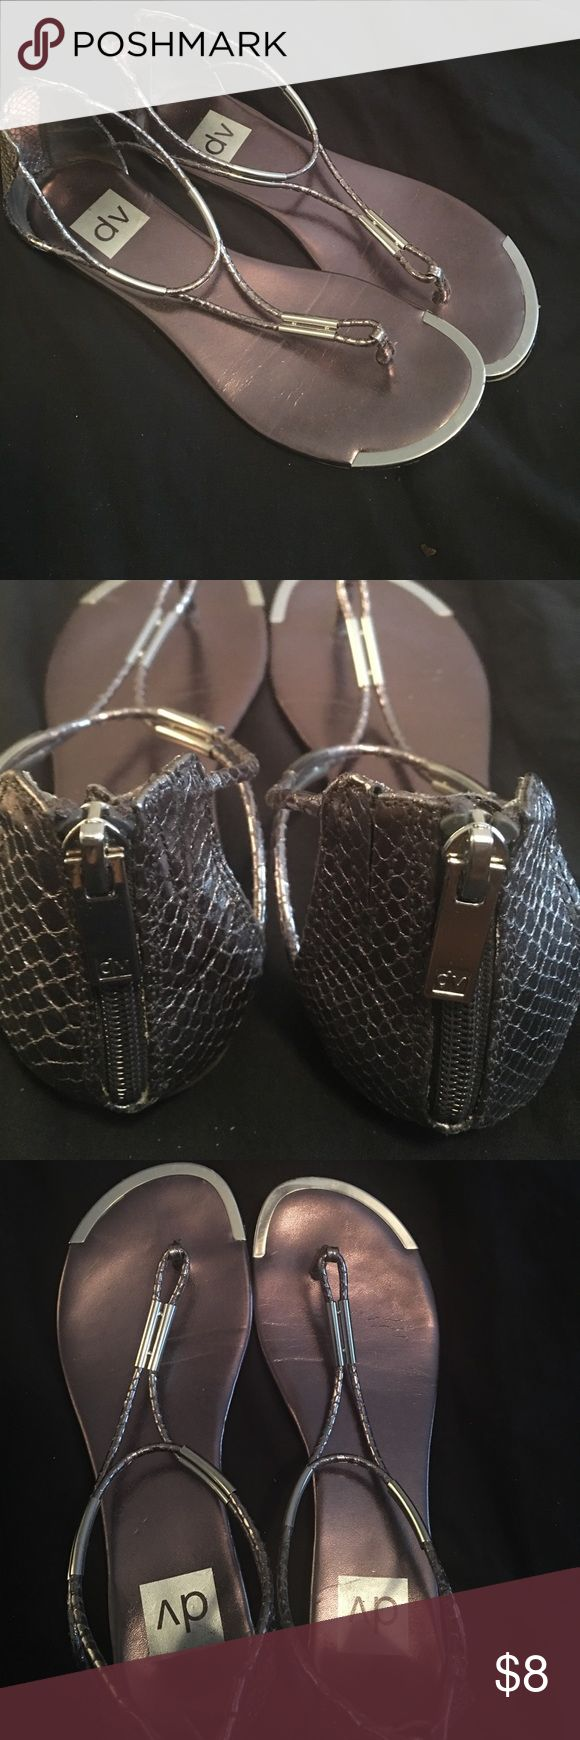 DV For Target flat pewter sandals Gently worn pewter sandals with snake embossed print and dark stainless steel colored hardware and reinforced toe. Zip in back to close.  Super cute for summer, unfortunately they were just a bit too small for me. DV by Dolce Vita Shoes Sandals